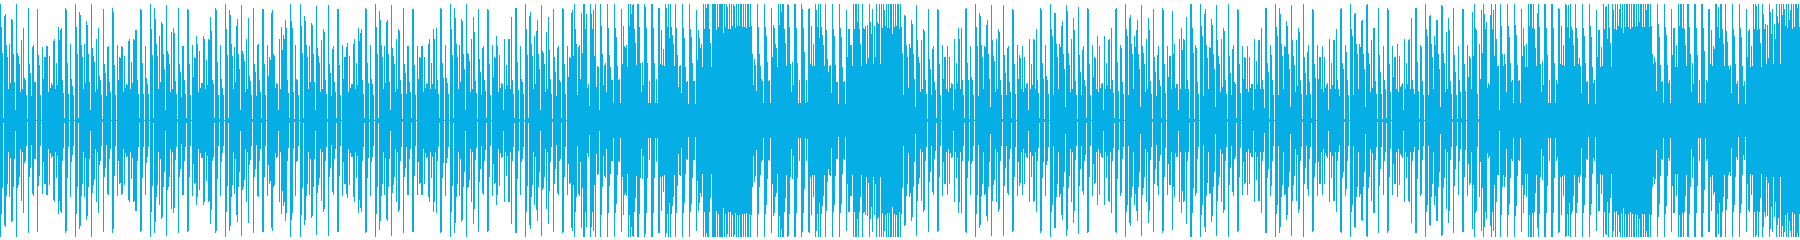 FC-style loop through a pipe's reproduced waveform